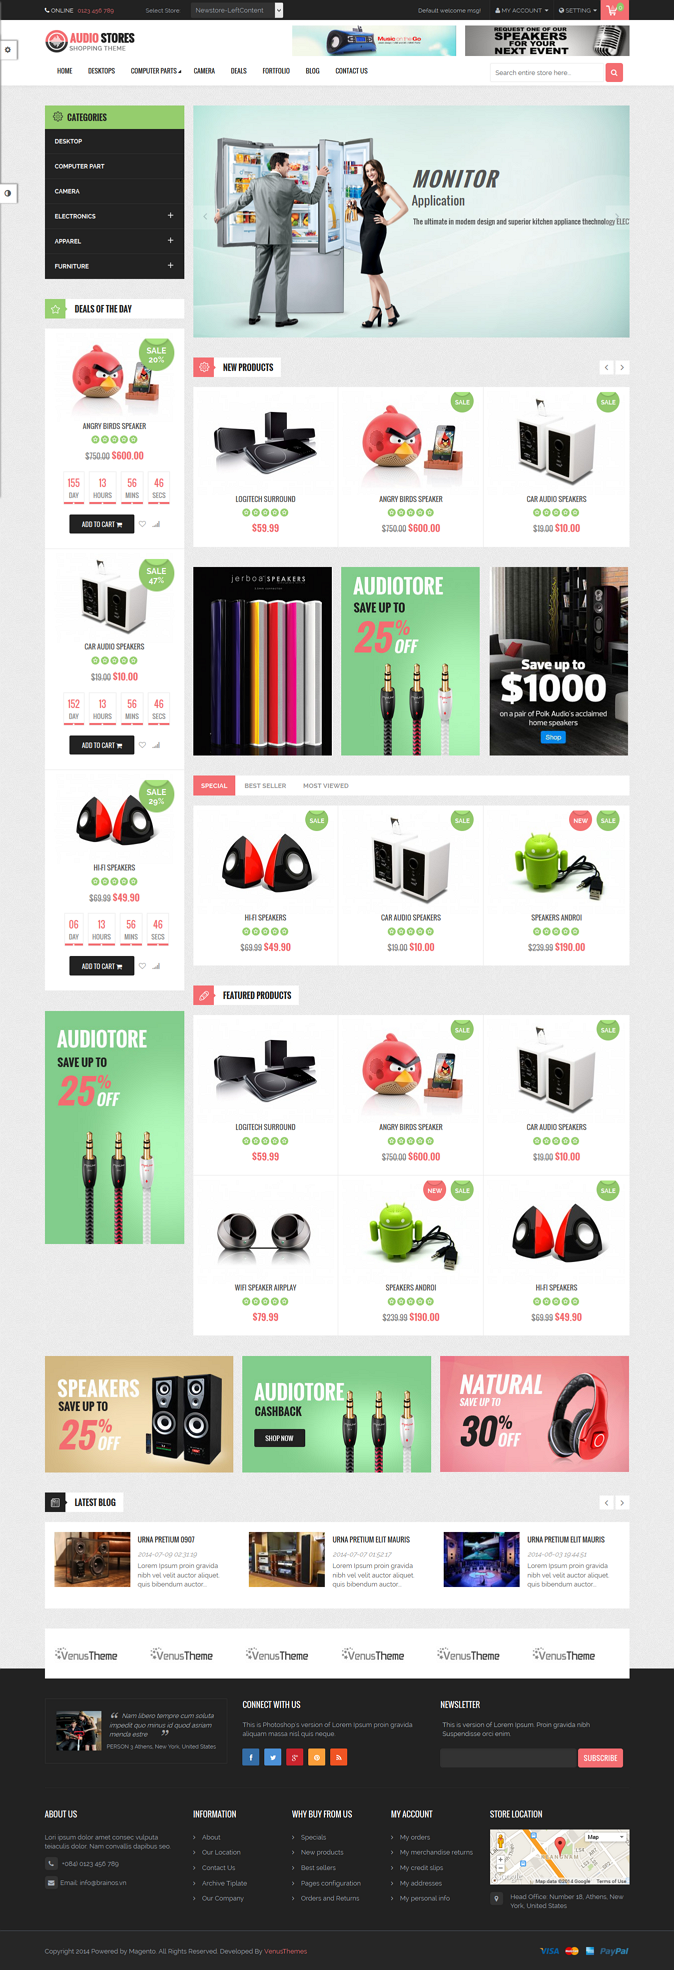 Venus Audio Store is a Responsive Magento Template suitable for any kind of Audio Store, Hightec ...